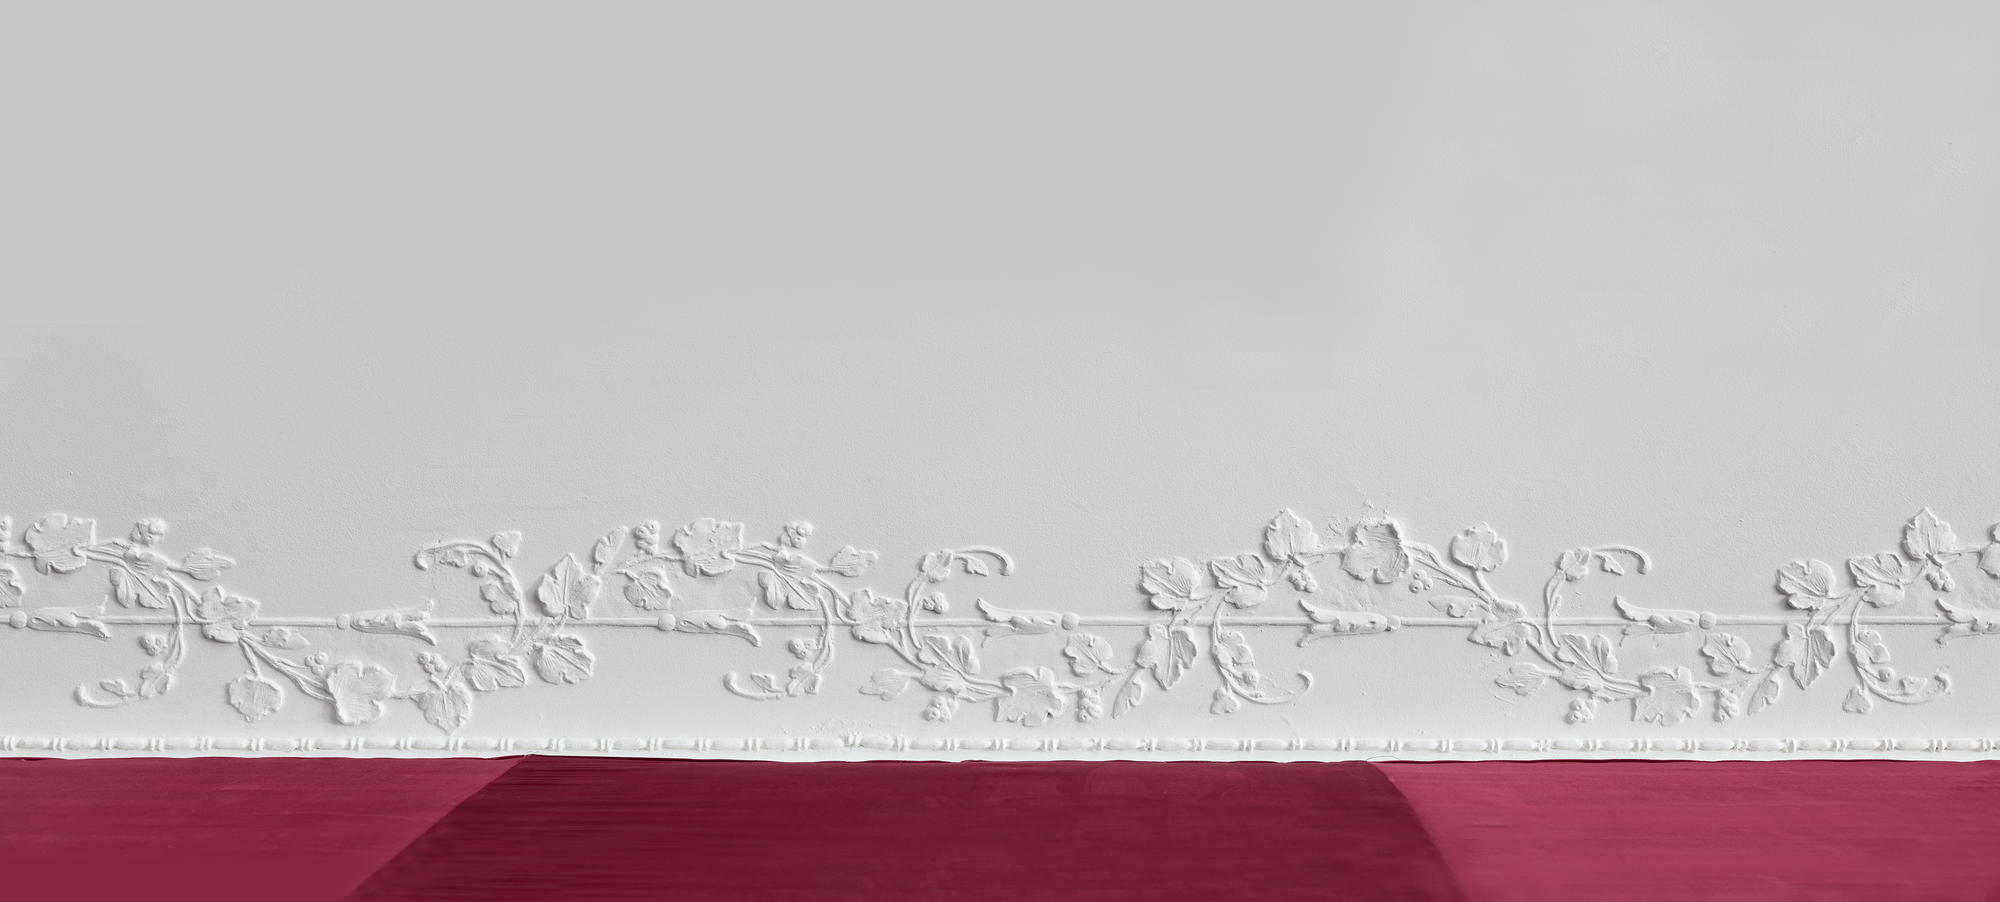 Molding on a white wall with a red banner underneath.